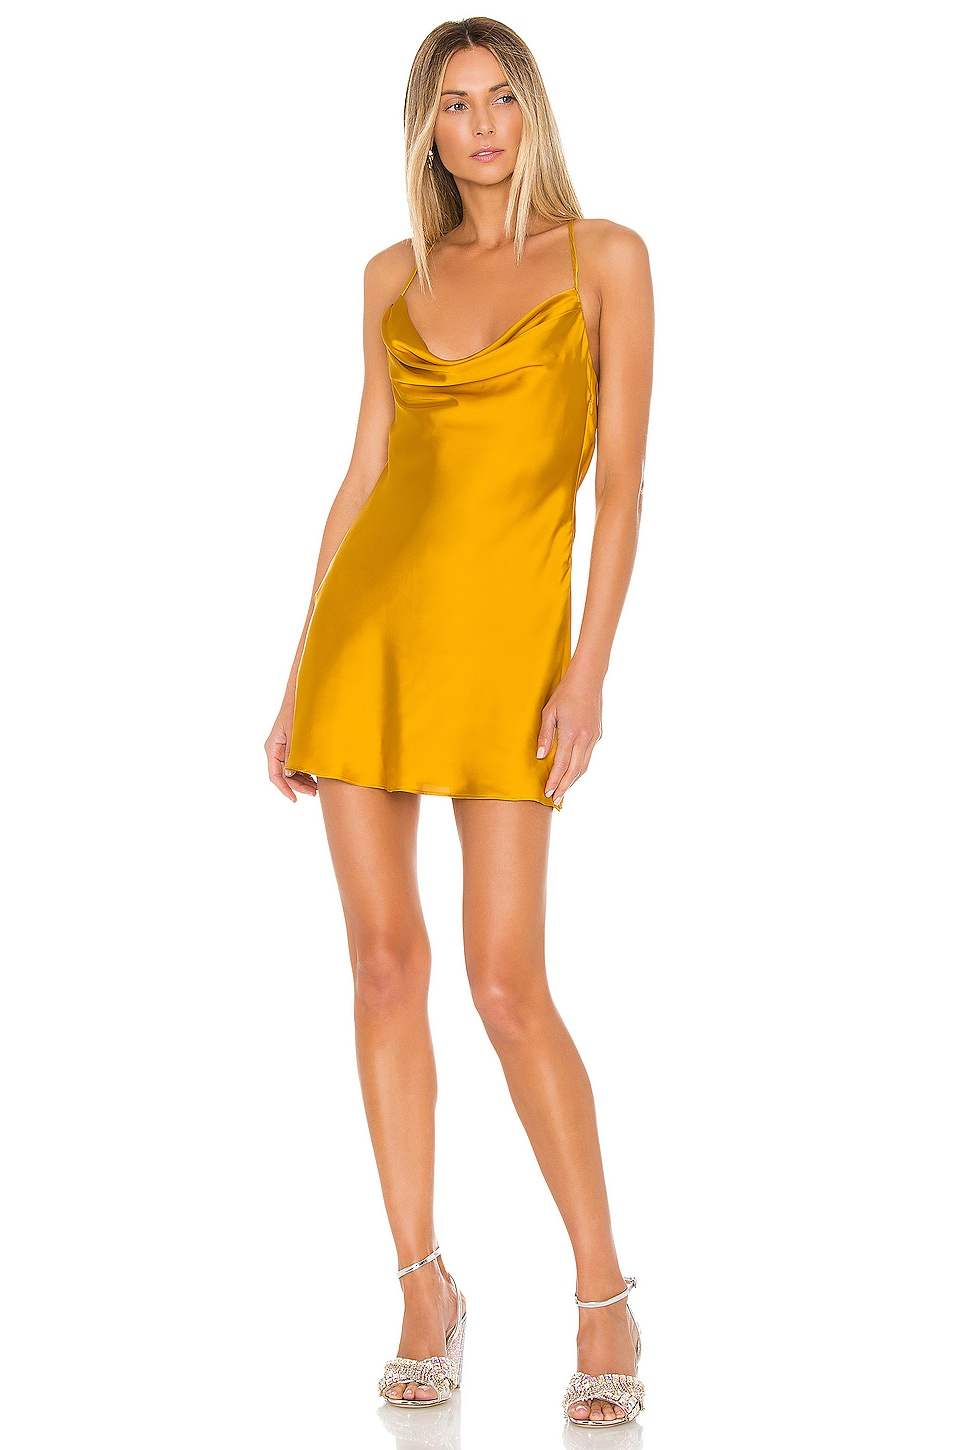 Lovers + Friends Boa Mini Dress in Sunflower Yellow